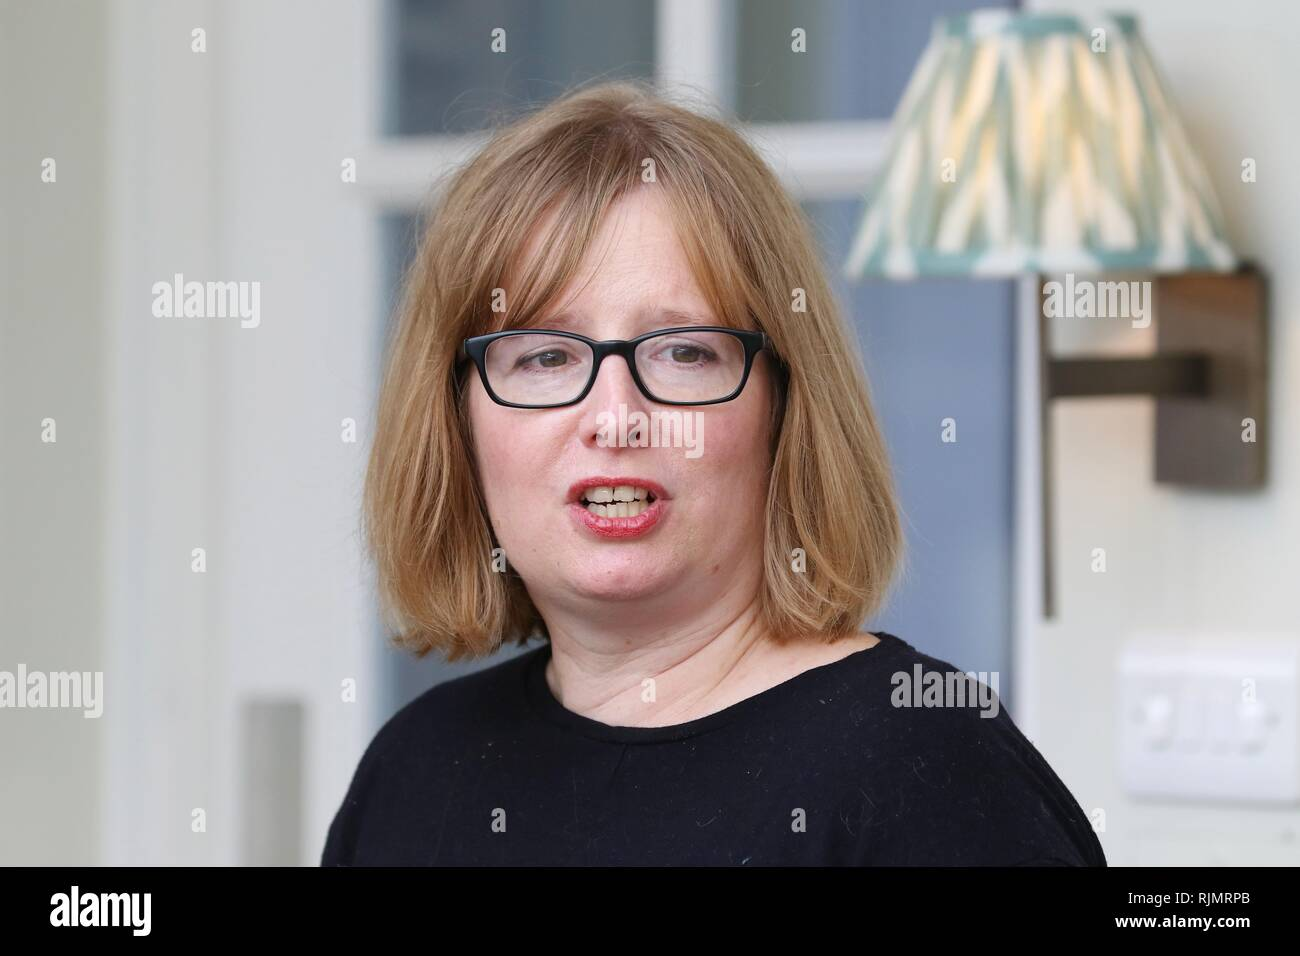 Lucy Mangan, the British journalist, writer, and author, TV critic for The Guardian. Photo by Antony Thompson/TWM - Stock Image